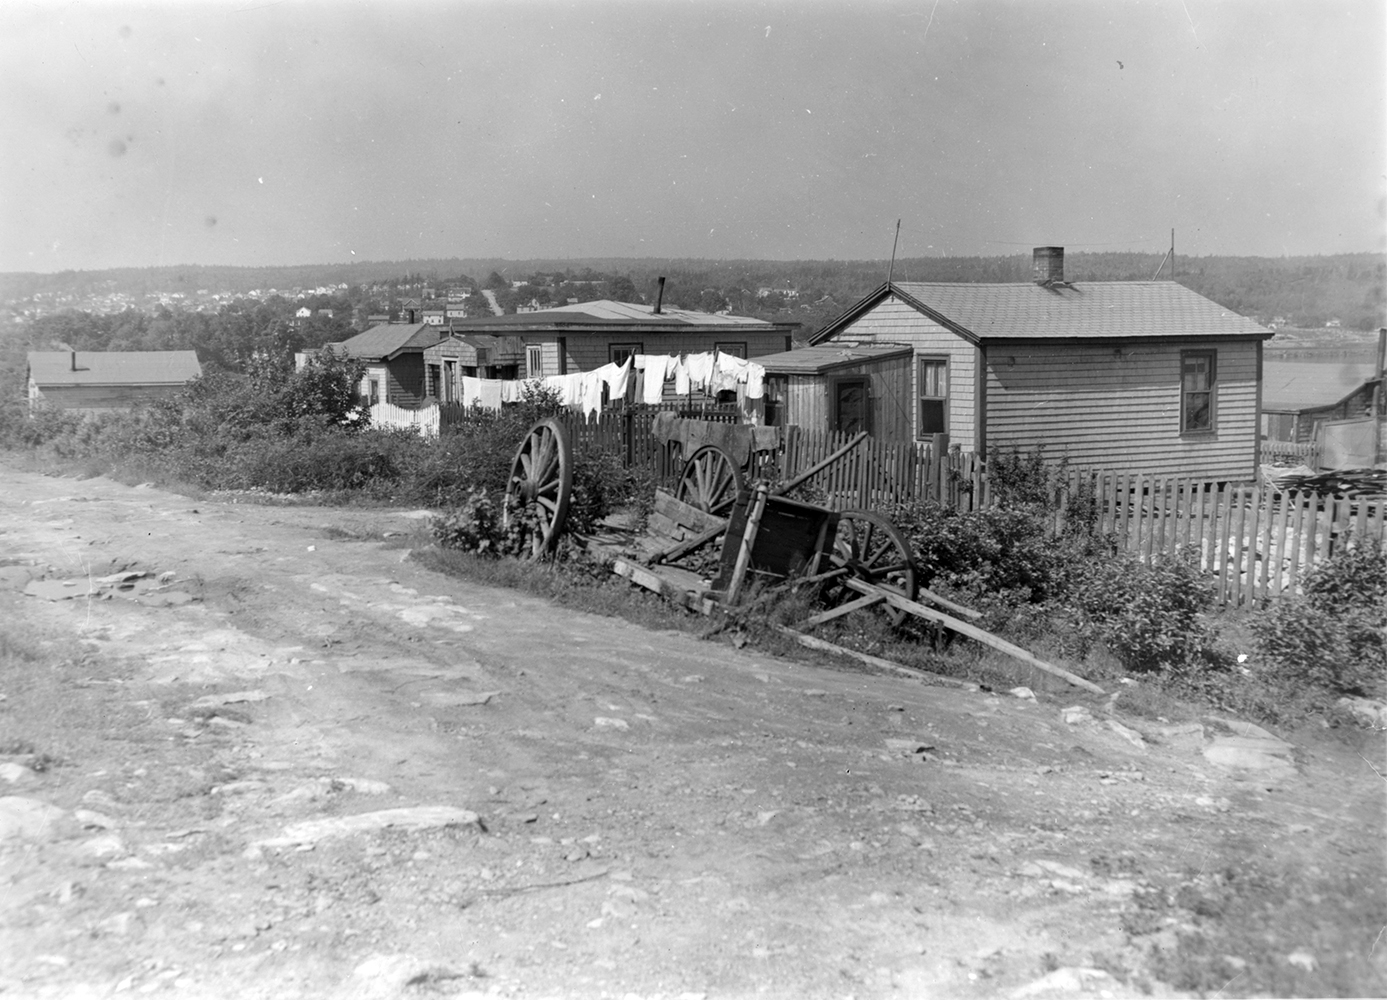 Houses_in_Africville_with_laundry_hanging_on_the_line_(32862740654)